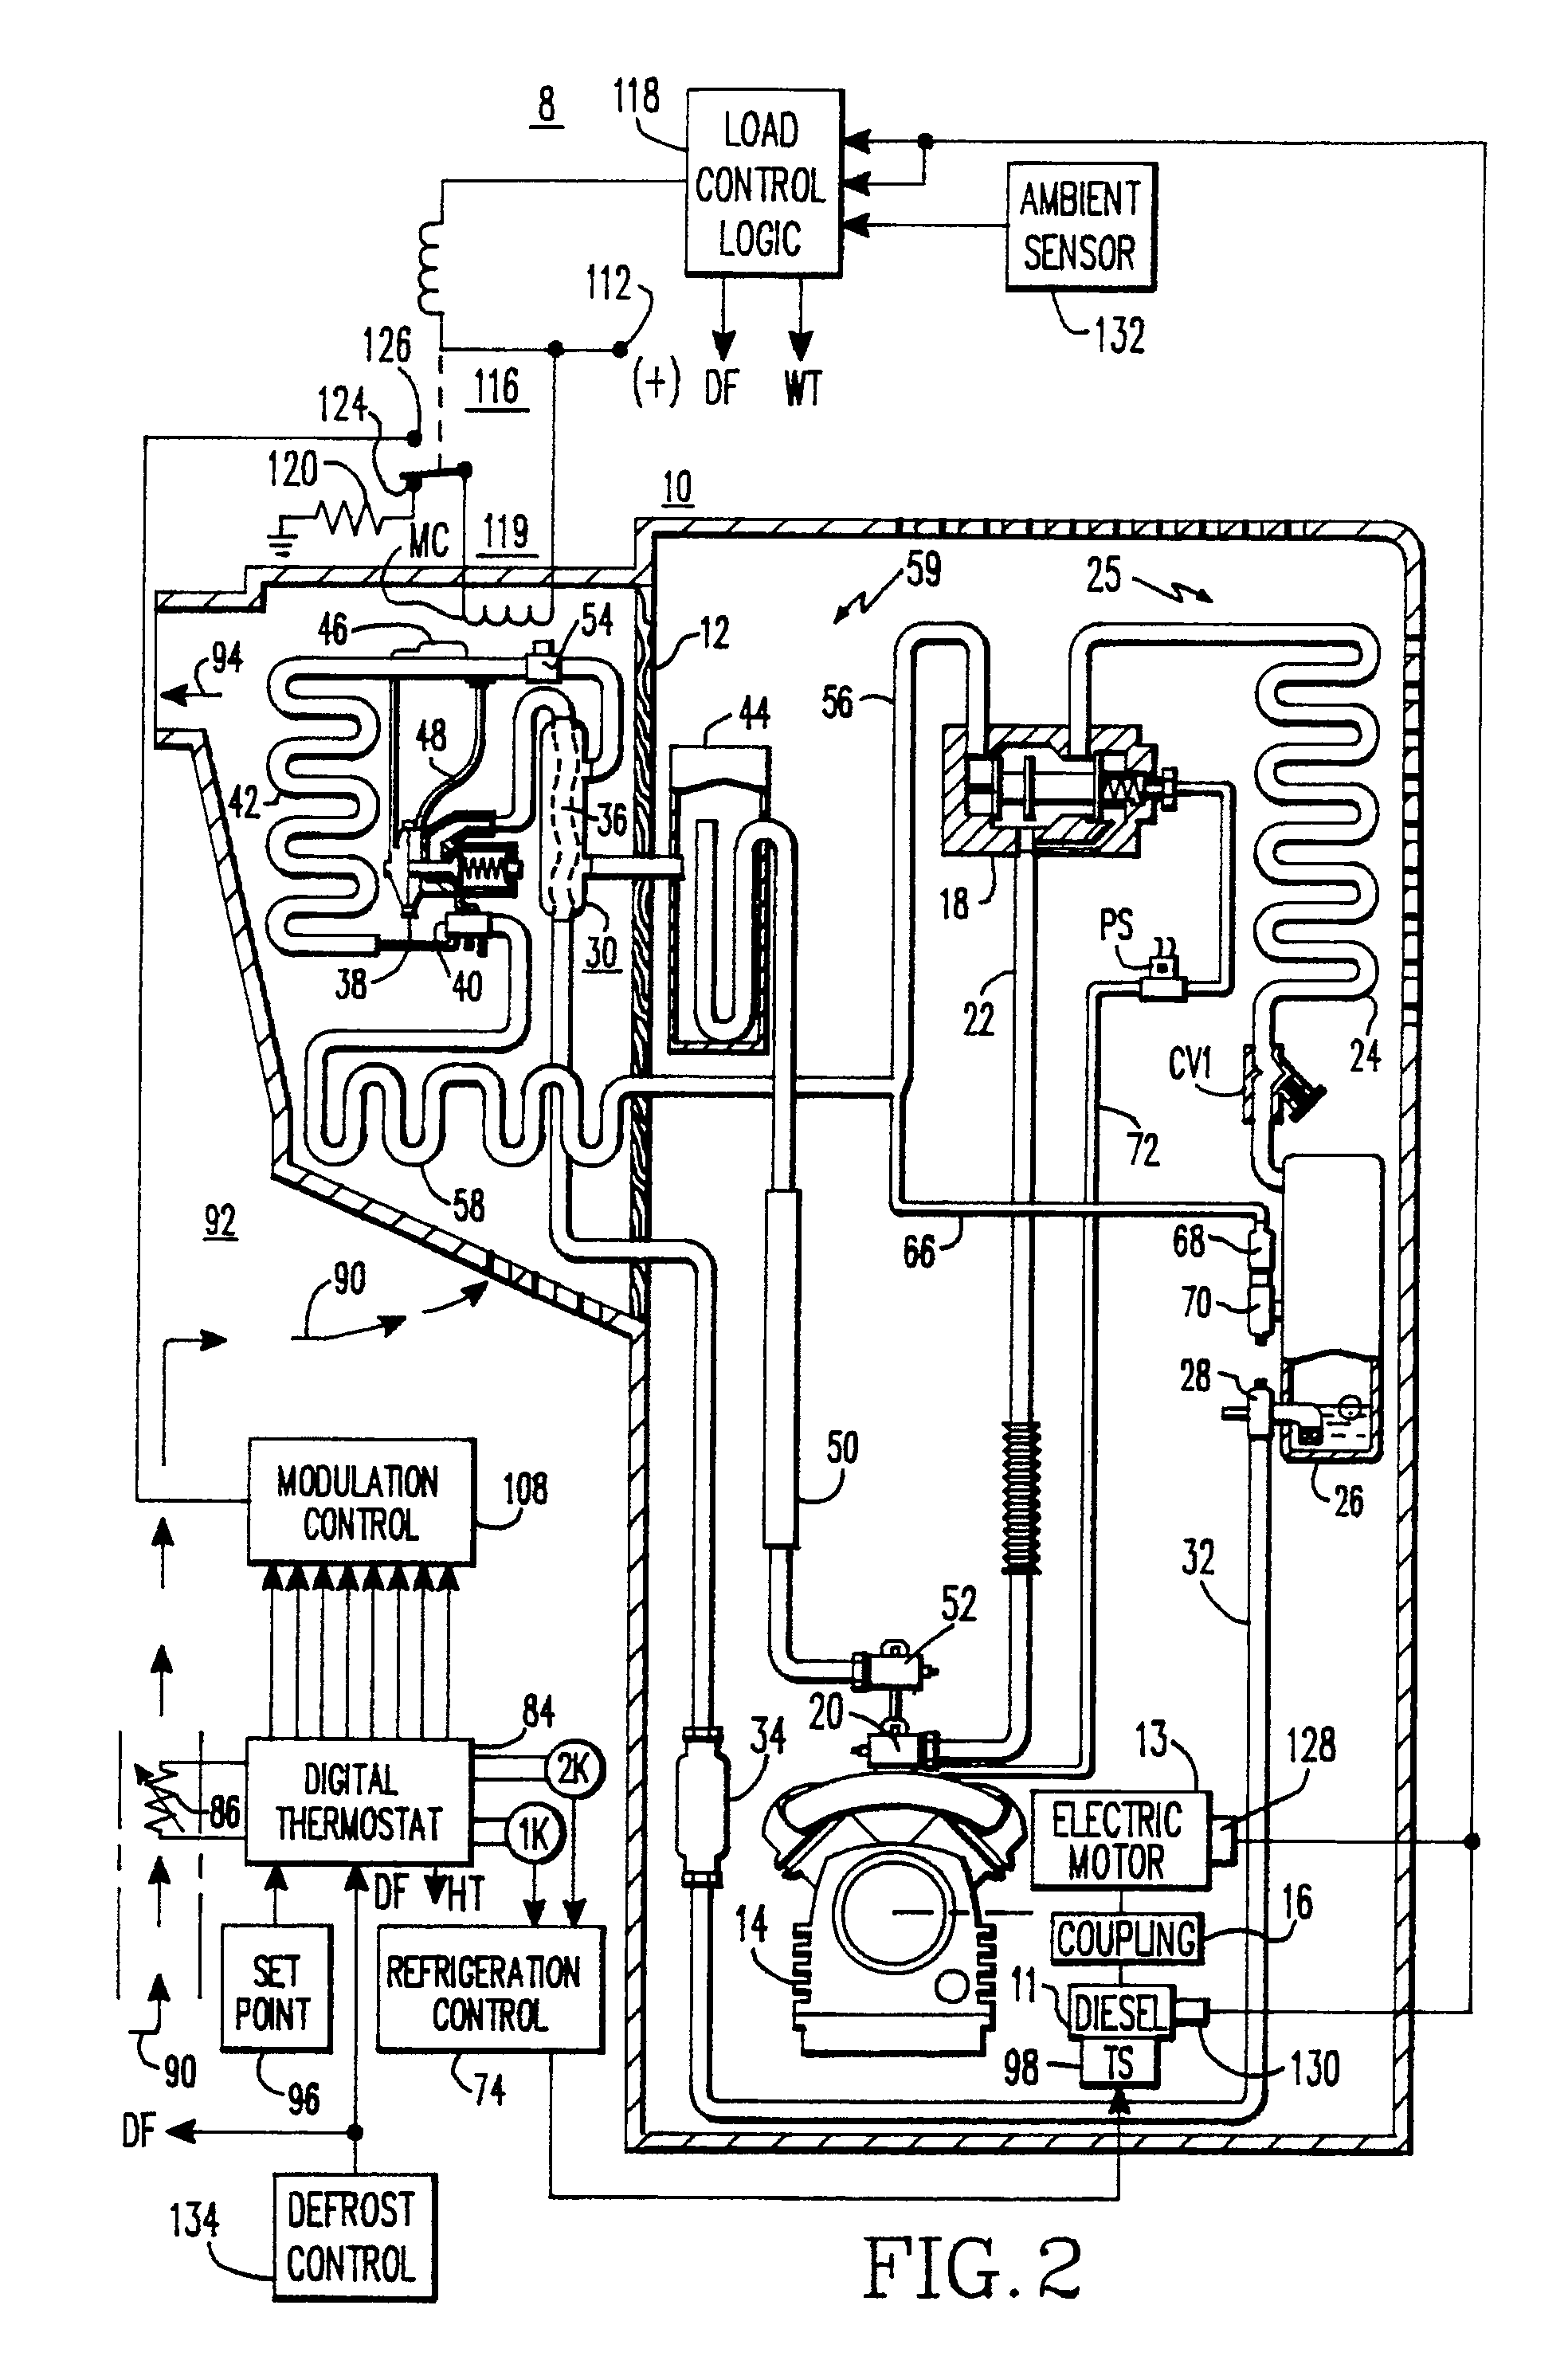 thermo king tripac alternator wiring diagram thermo king